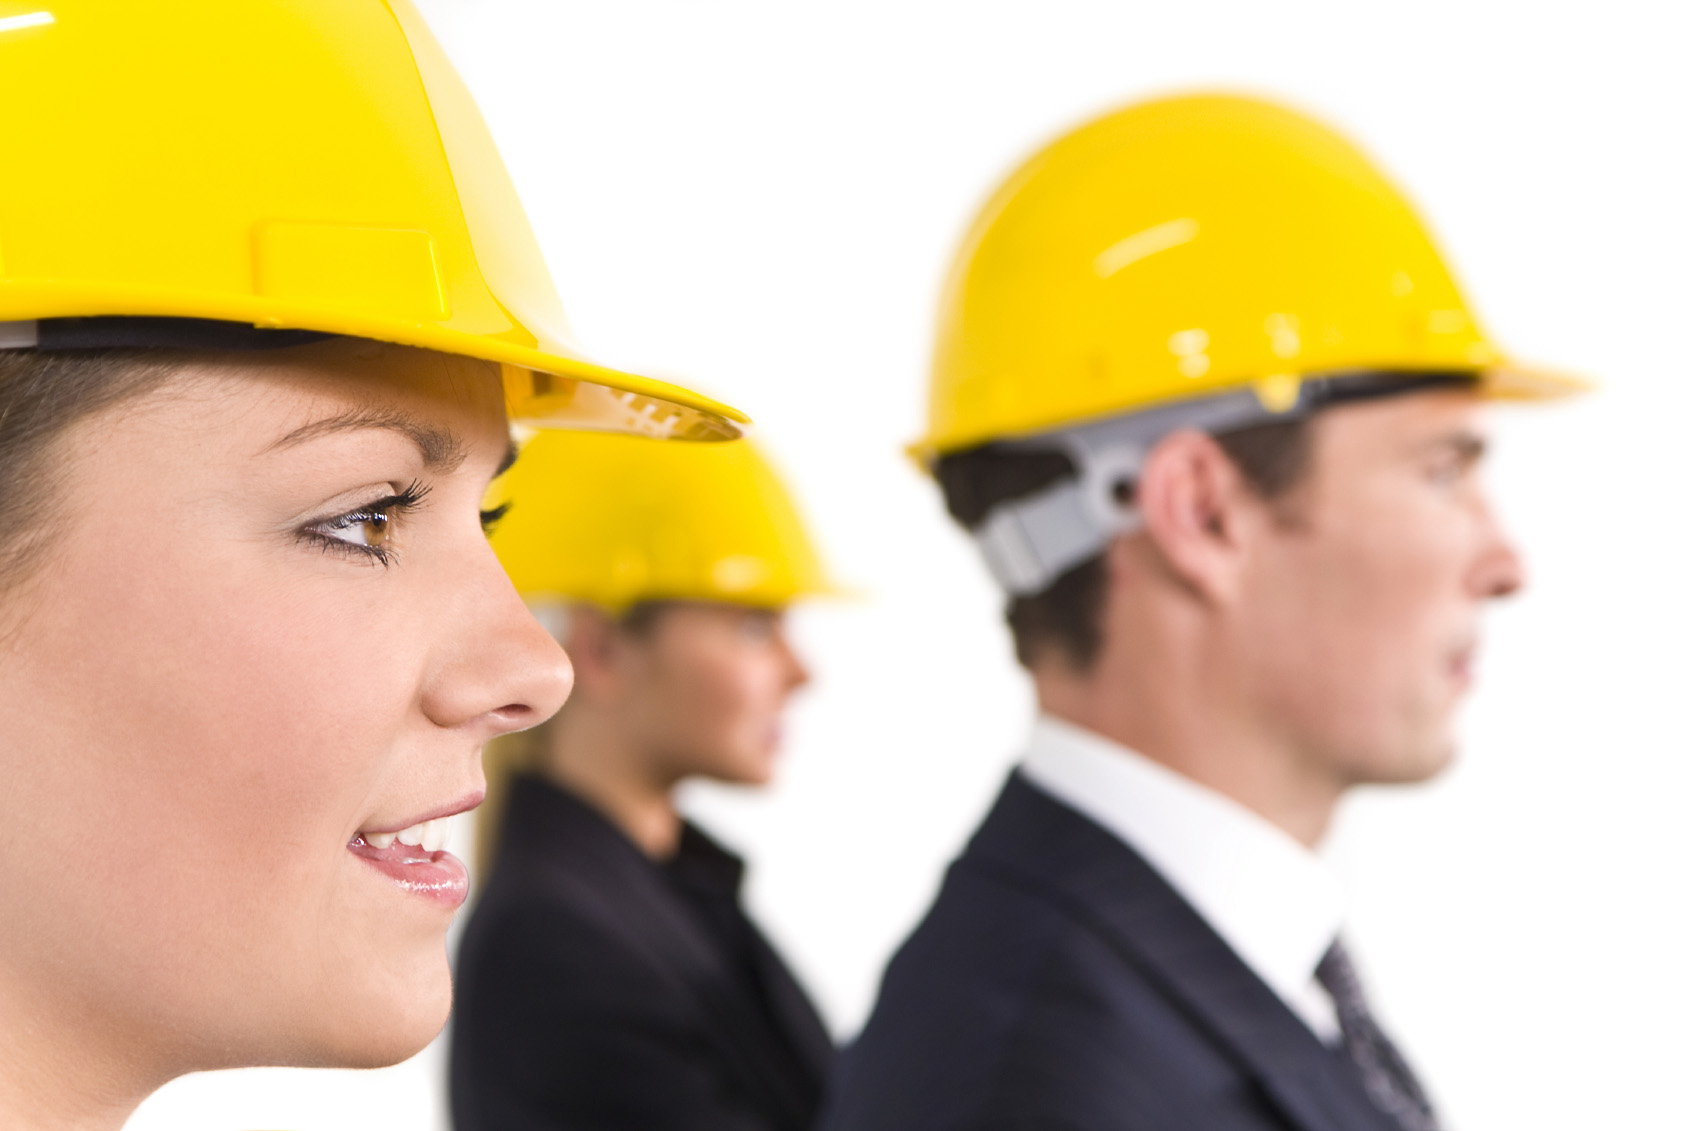 Inspiring a Good Work Ethic in your Construction Team